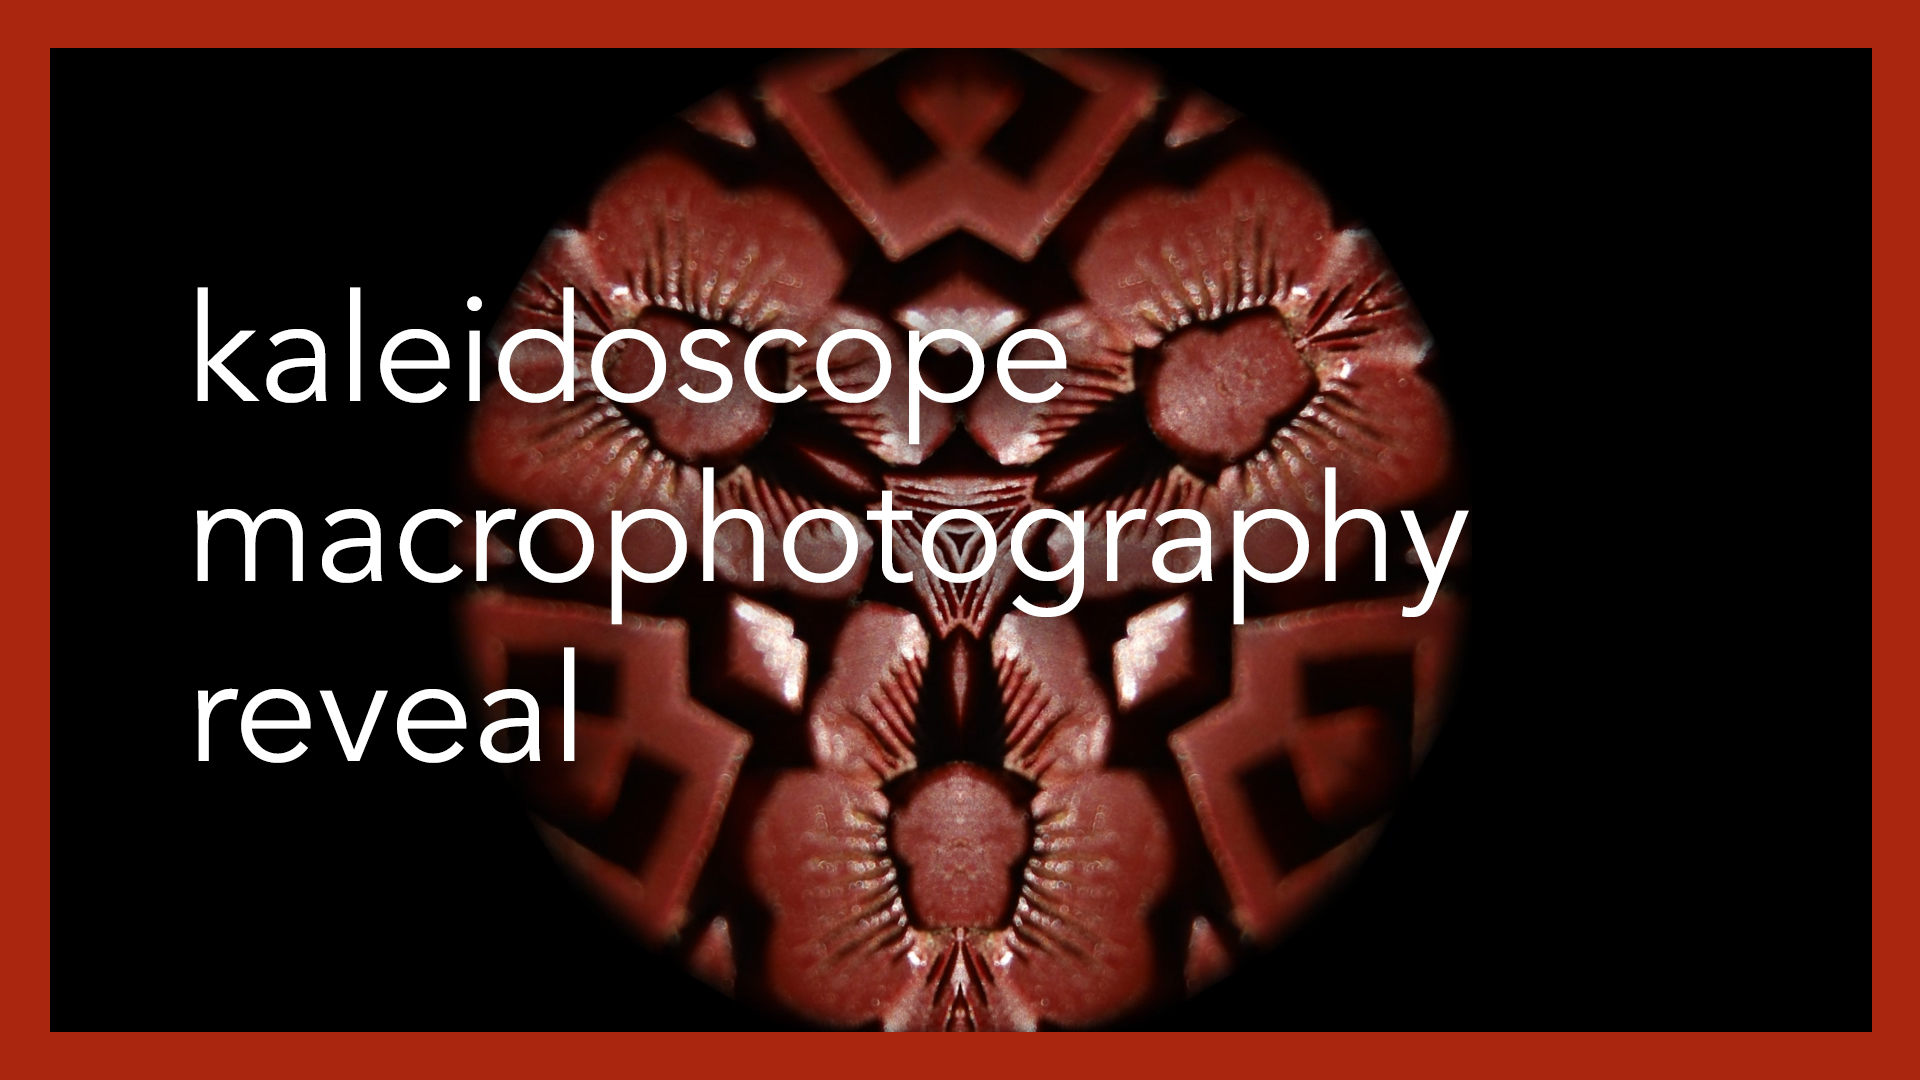 Kaleidoscope Macrophotography Reveal